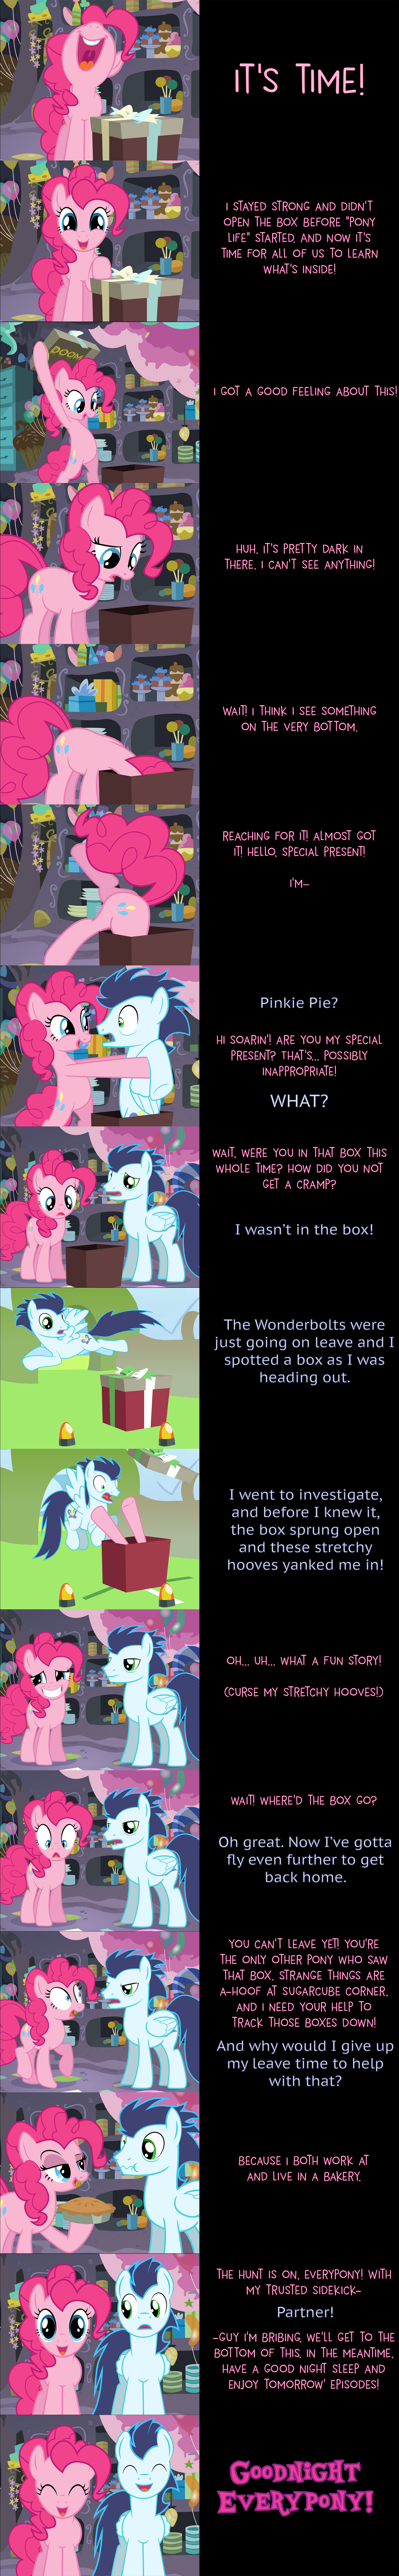 Pinkie Pie Says Goodnight: Unboxing